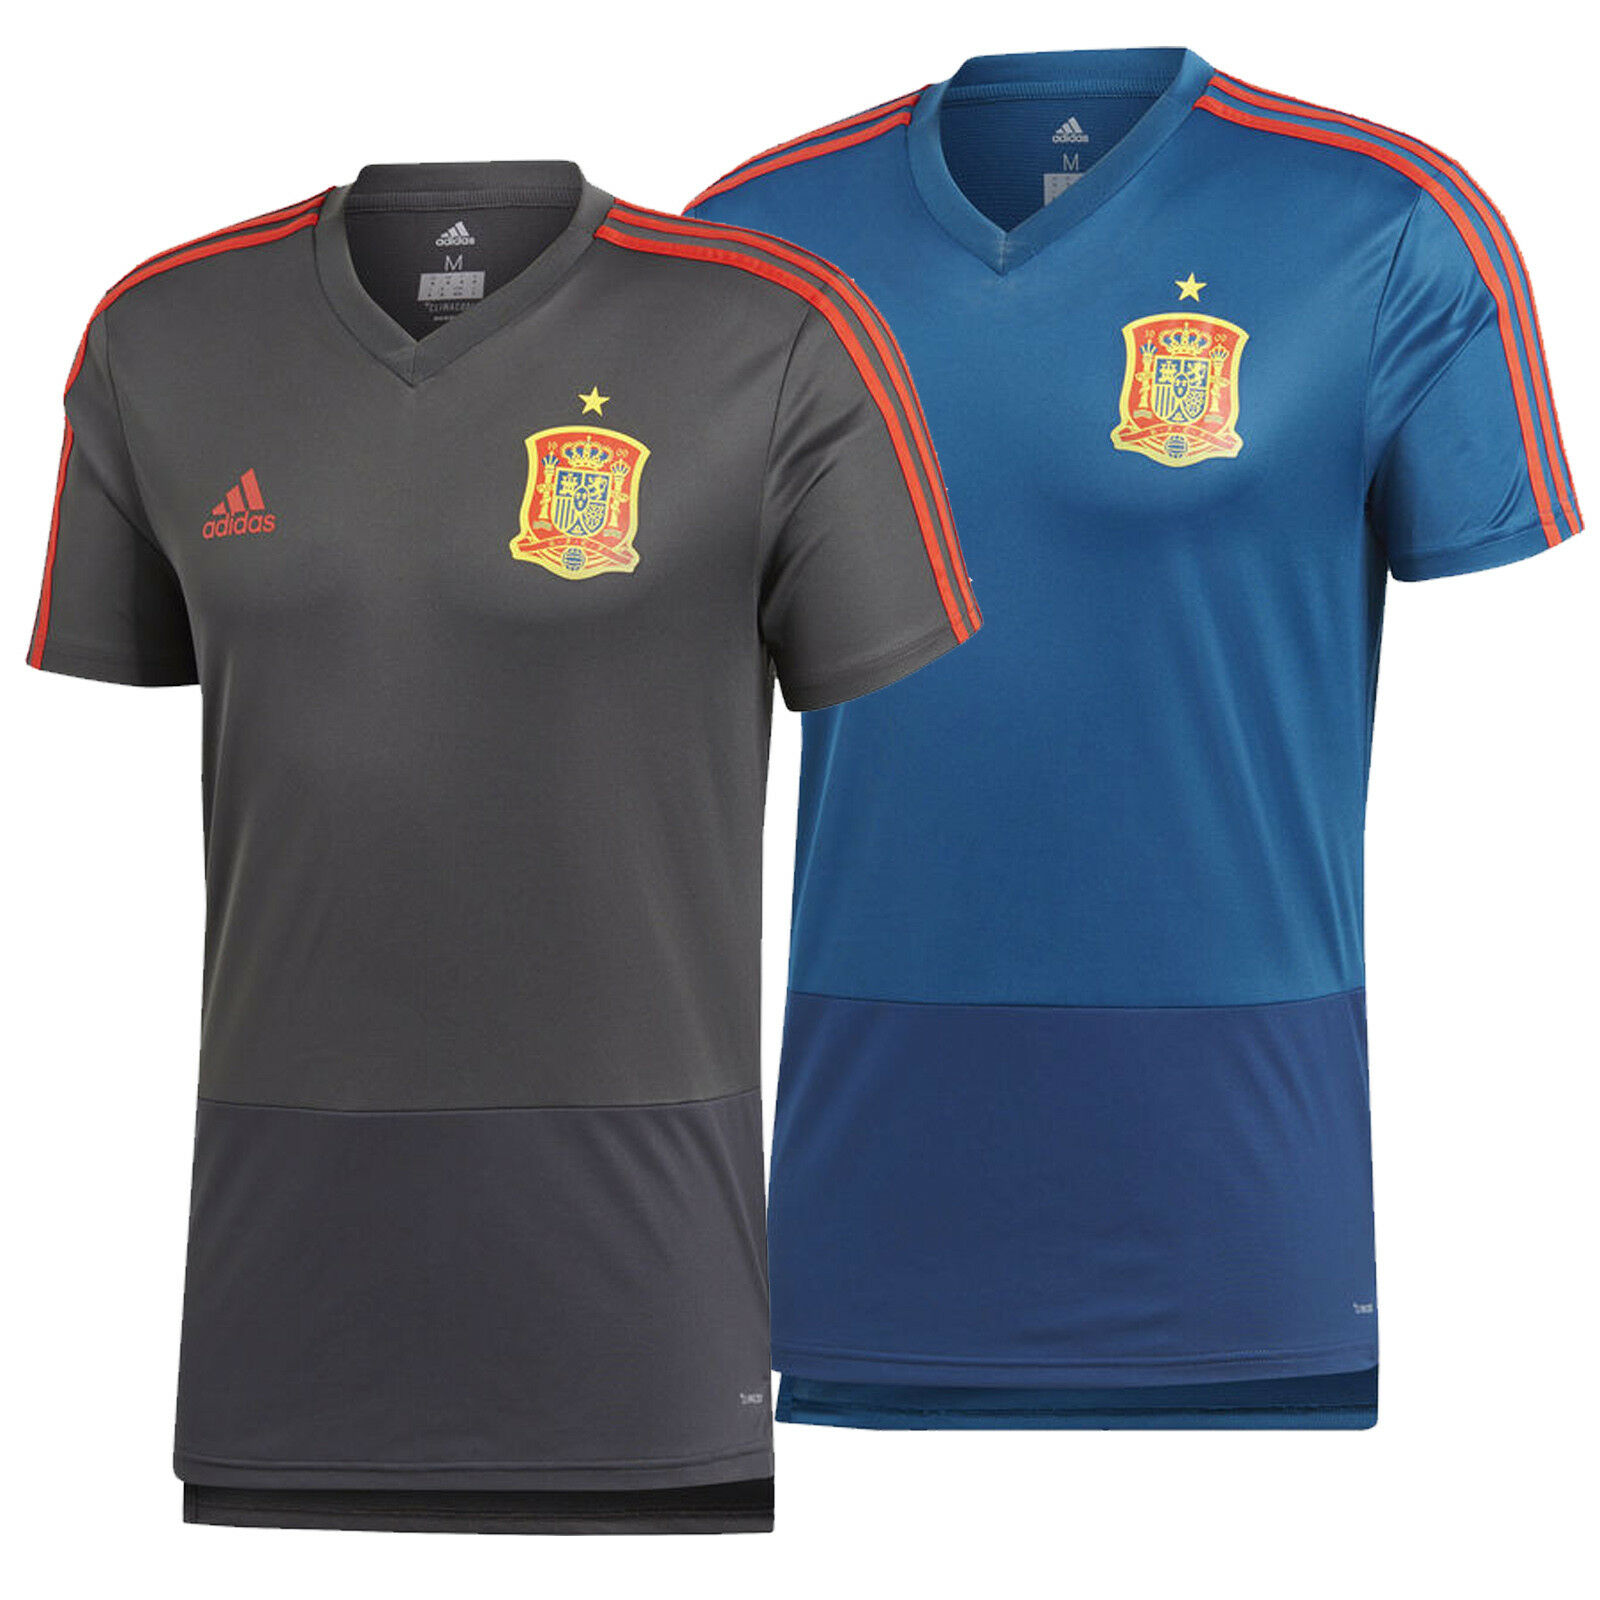 Adidas Spain Training Jersey Climacool Football Top New  a3d496387